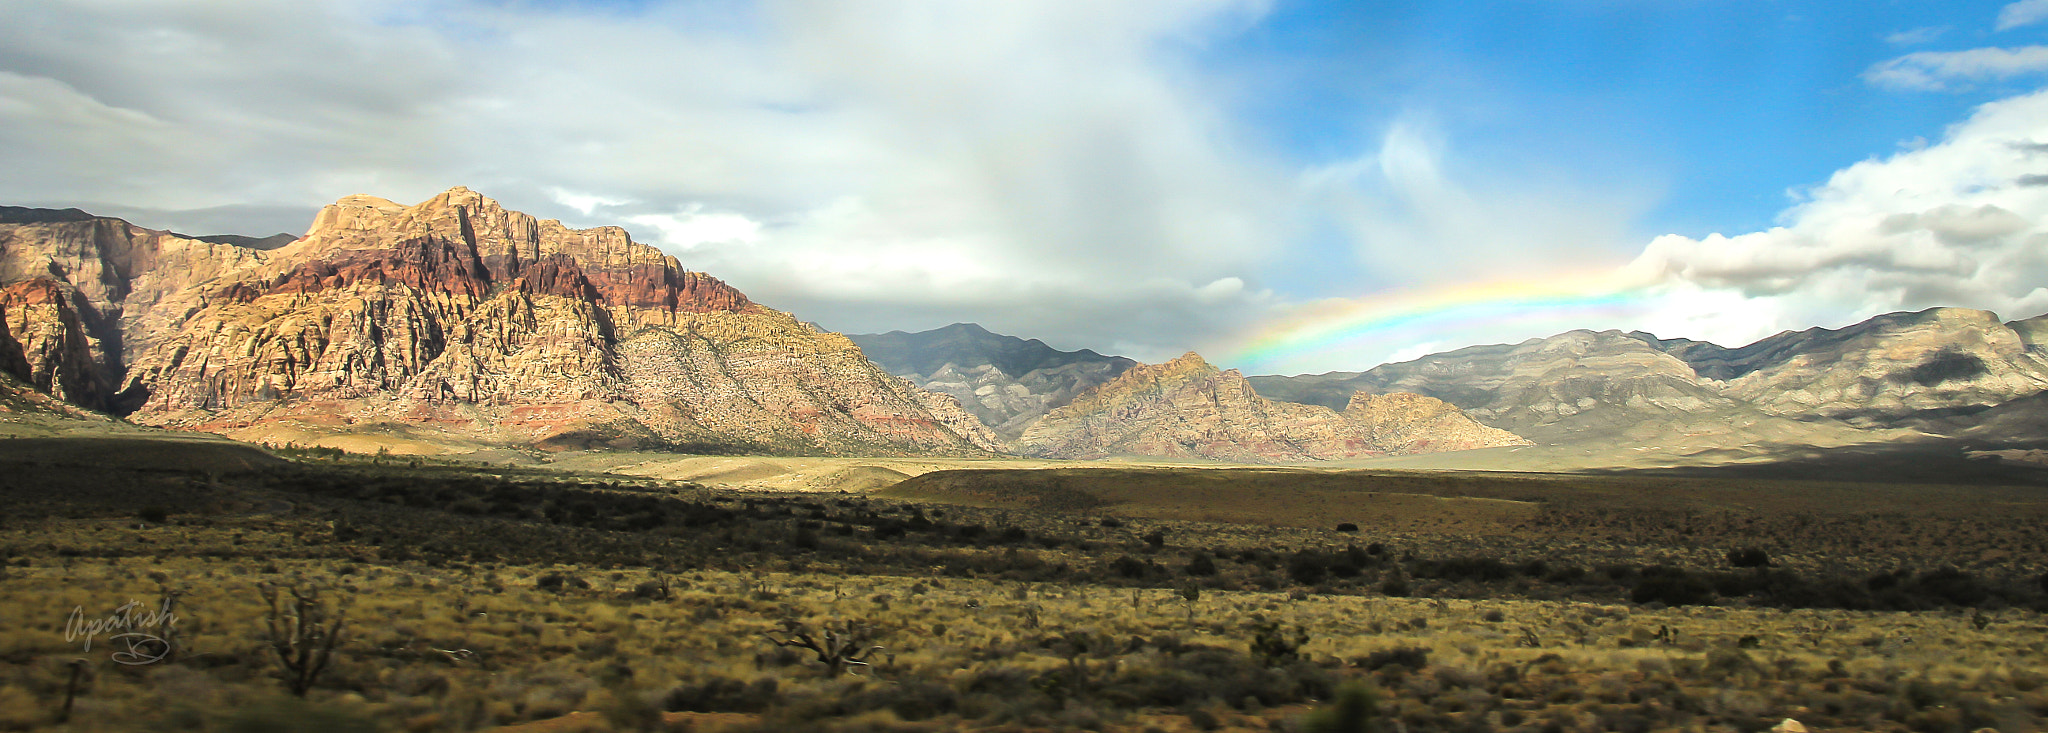 Photograph Red rock rainbow by Ariel Patish on 500px